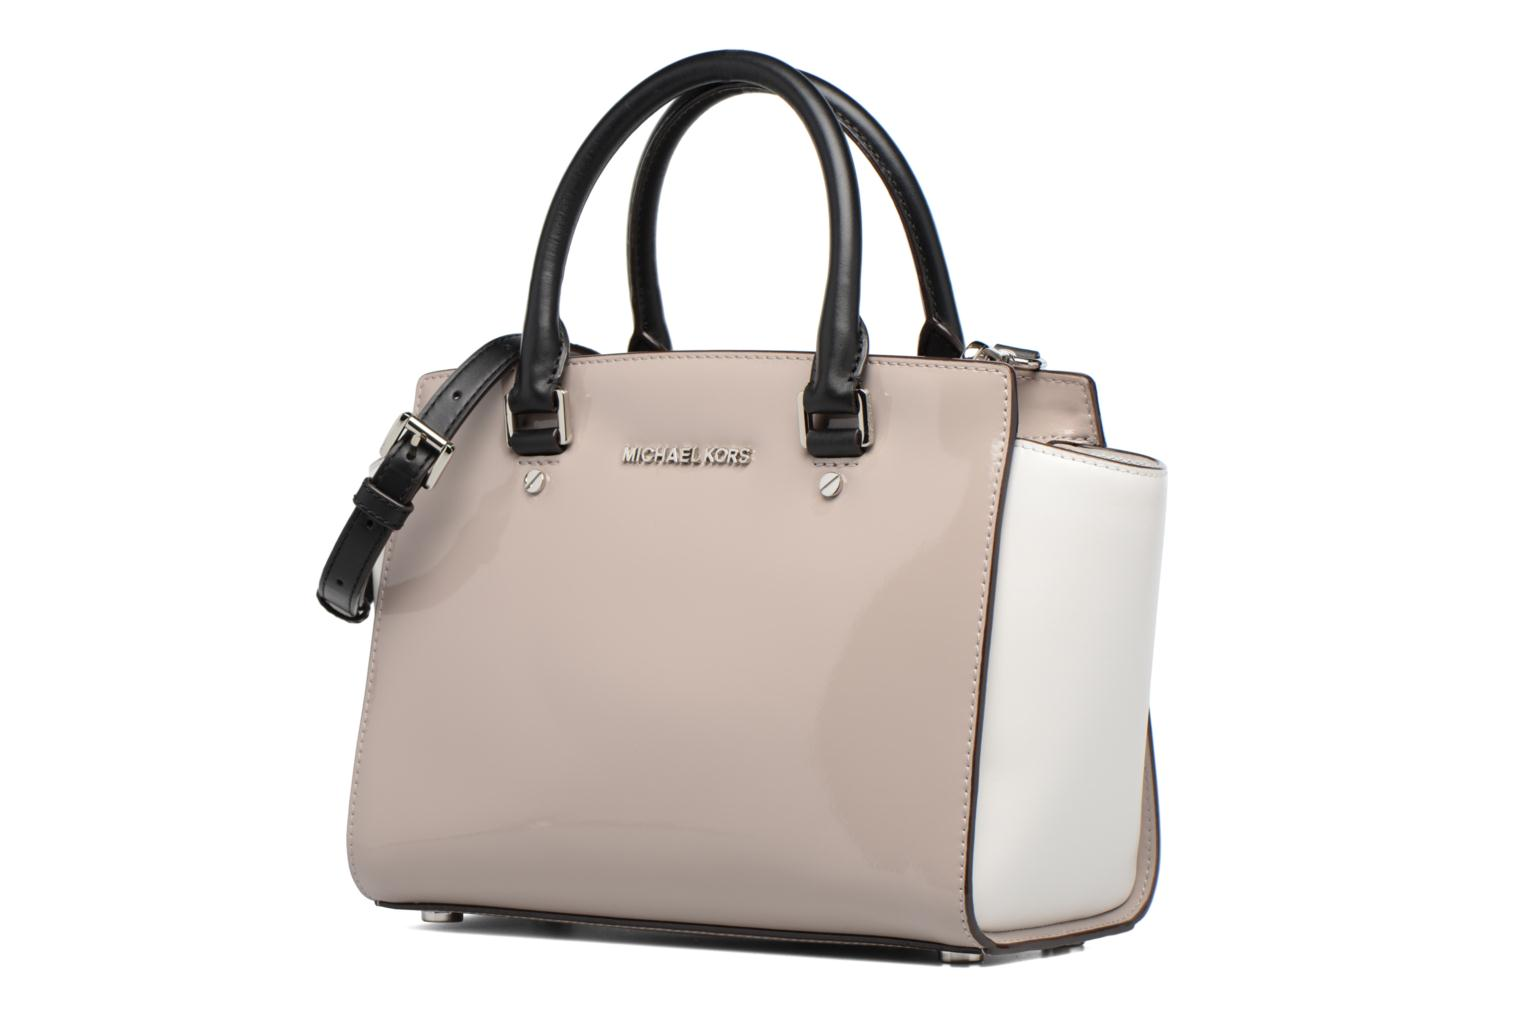 SELMA MD TZ SATCHEL 359 Dark Ciment